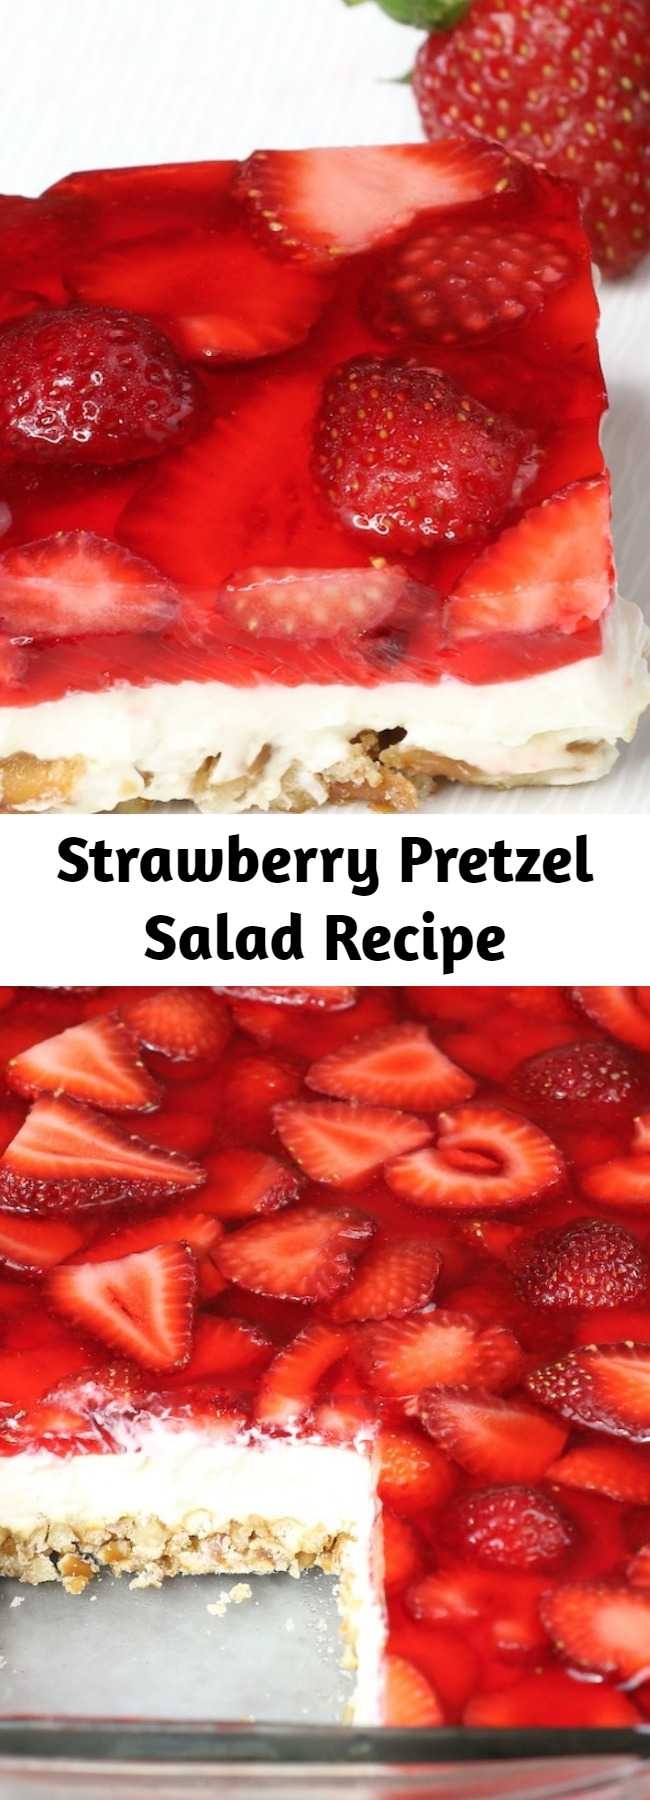 Strawberry Pretzel Salad Recipe - The delicious combination of the saltiness from its pretzel crust, sweetness from the creamy and smooth cream cheese, with the fresh flavor from the strawberry and jello top layer! So irresistible! #StrawberryPretzelSalad